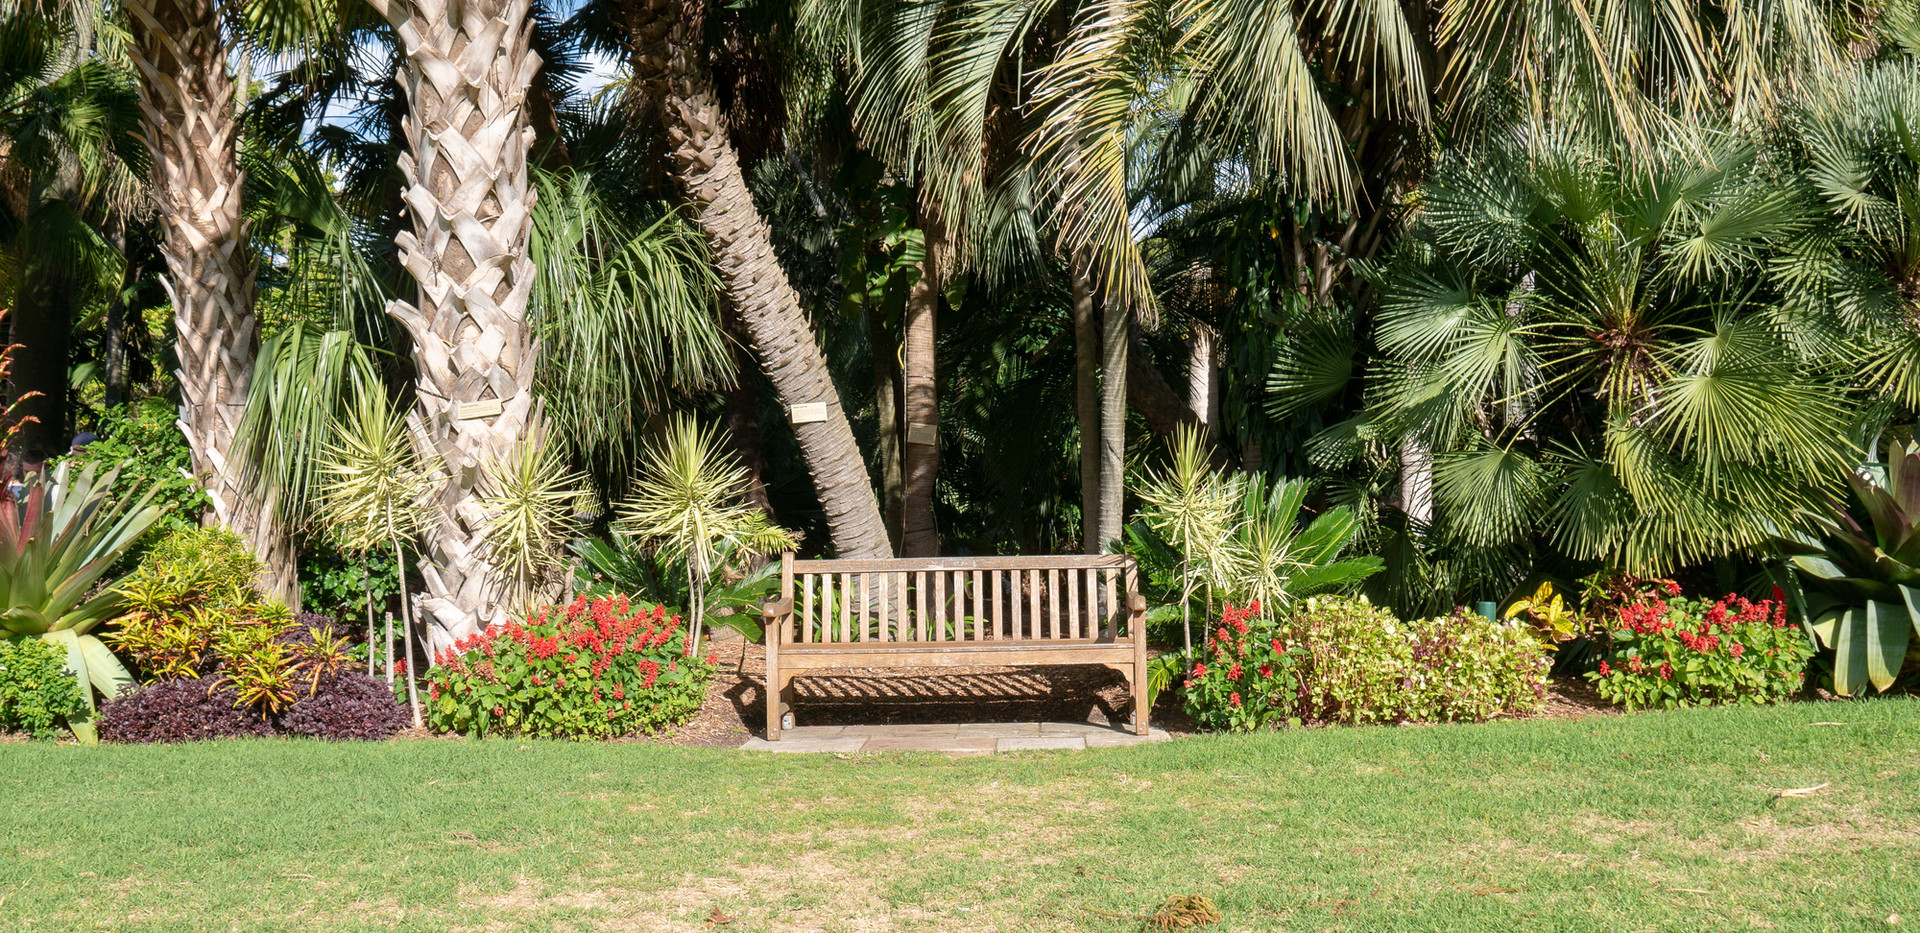 empty-brown-wooden-bench-in-a-park-16570